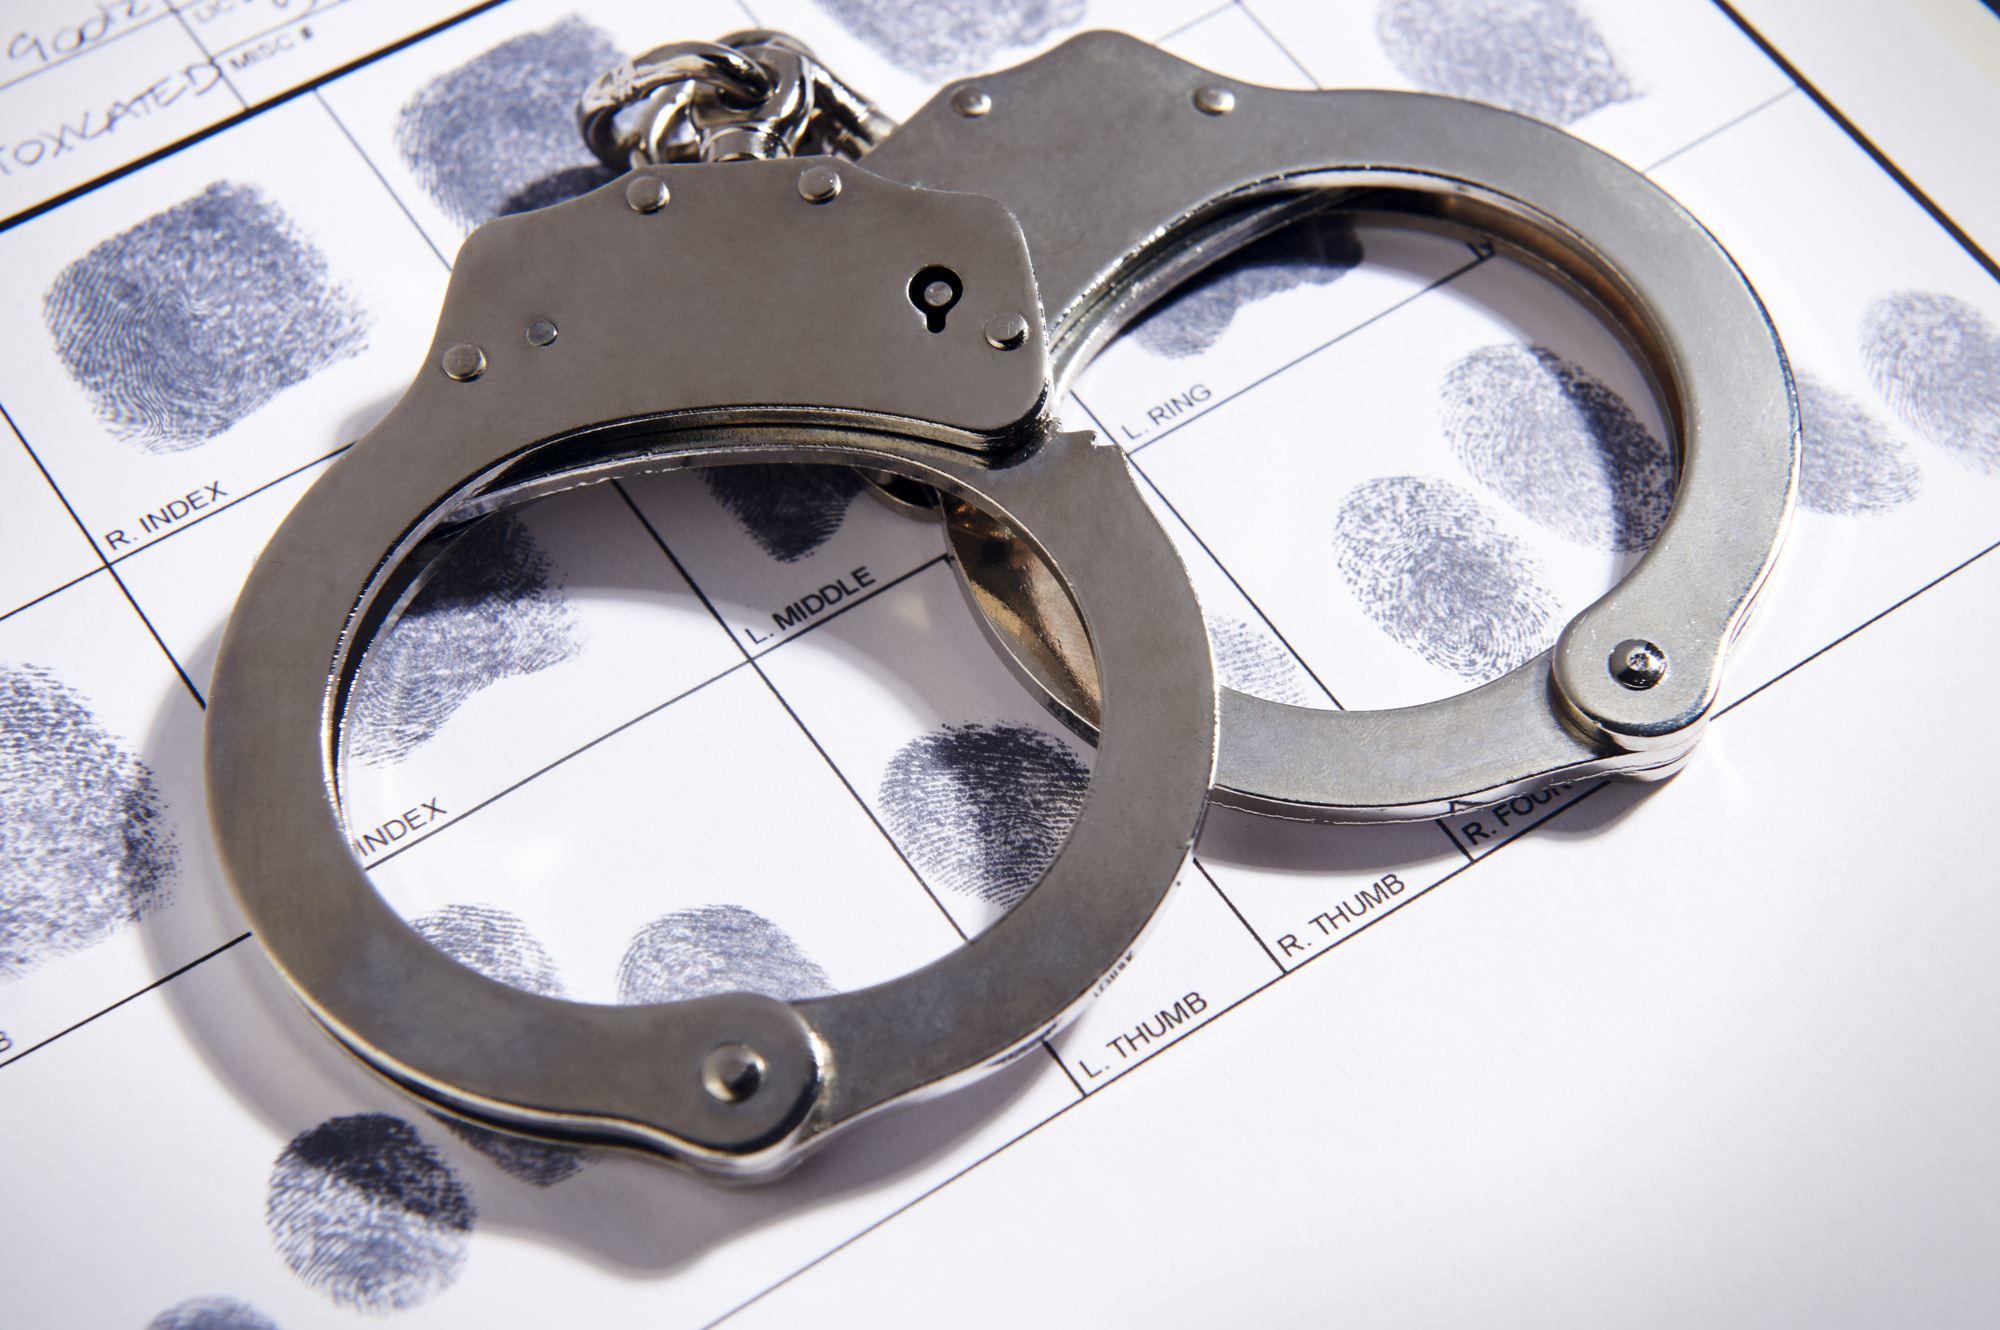 What Is A Public Arrest Record, And Where Can I Find Them?